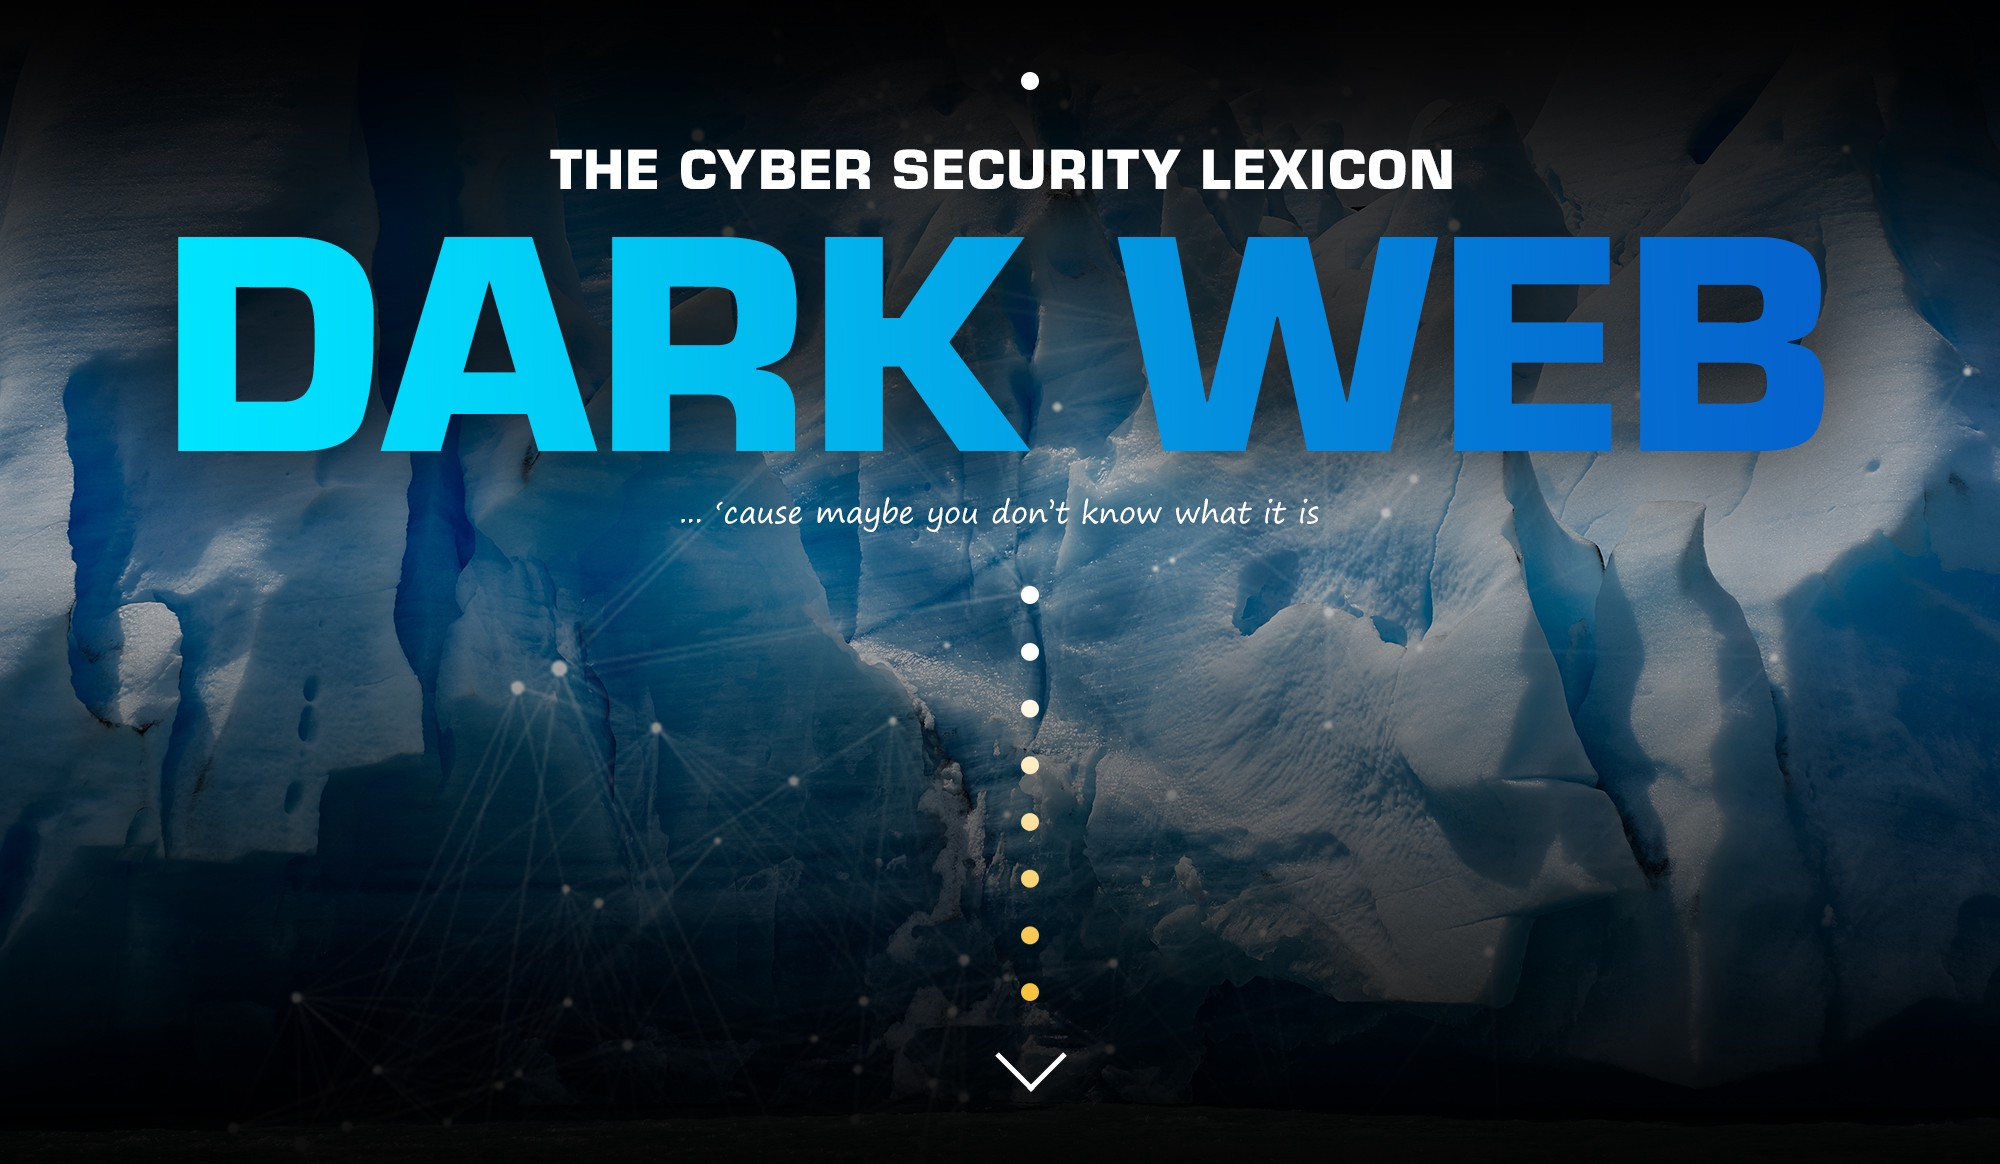 And today… What is the DARK WEB? - Ilan Dray - Medium